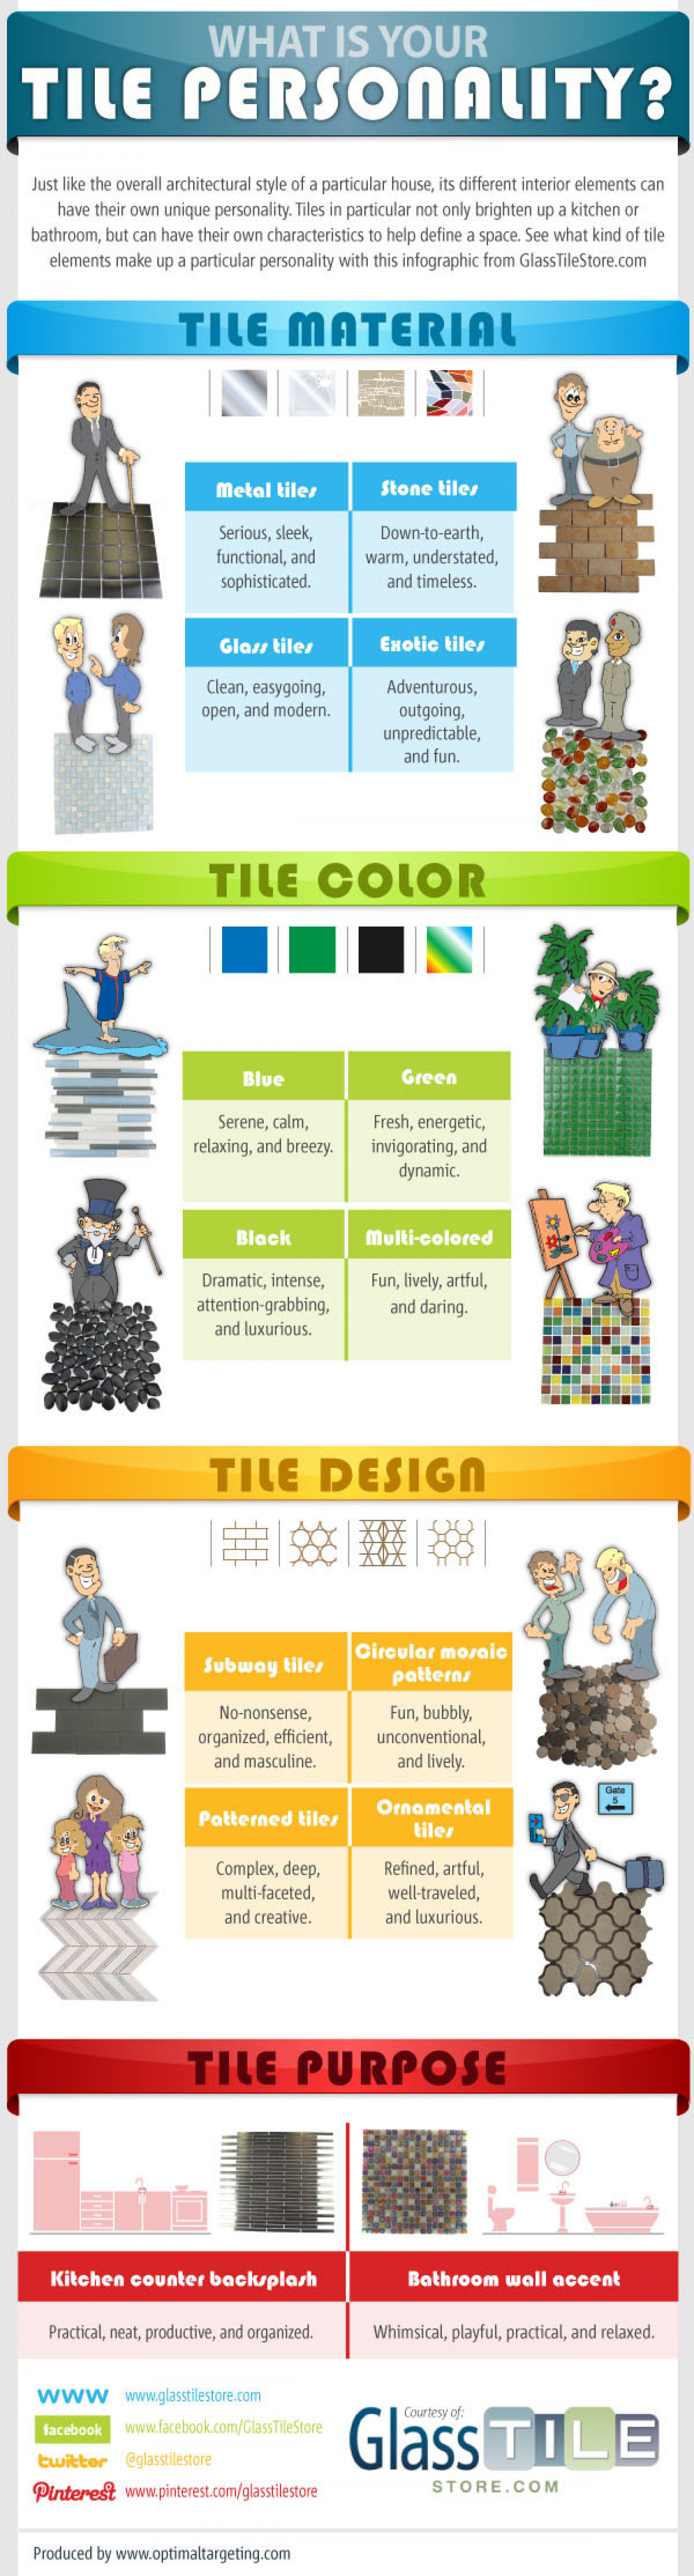 Tile Personality Infographic